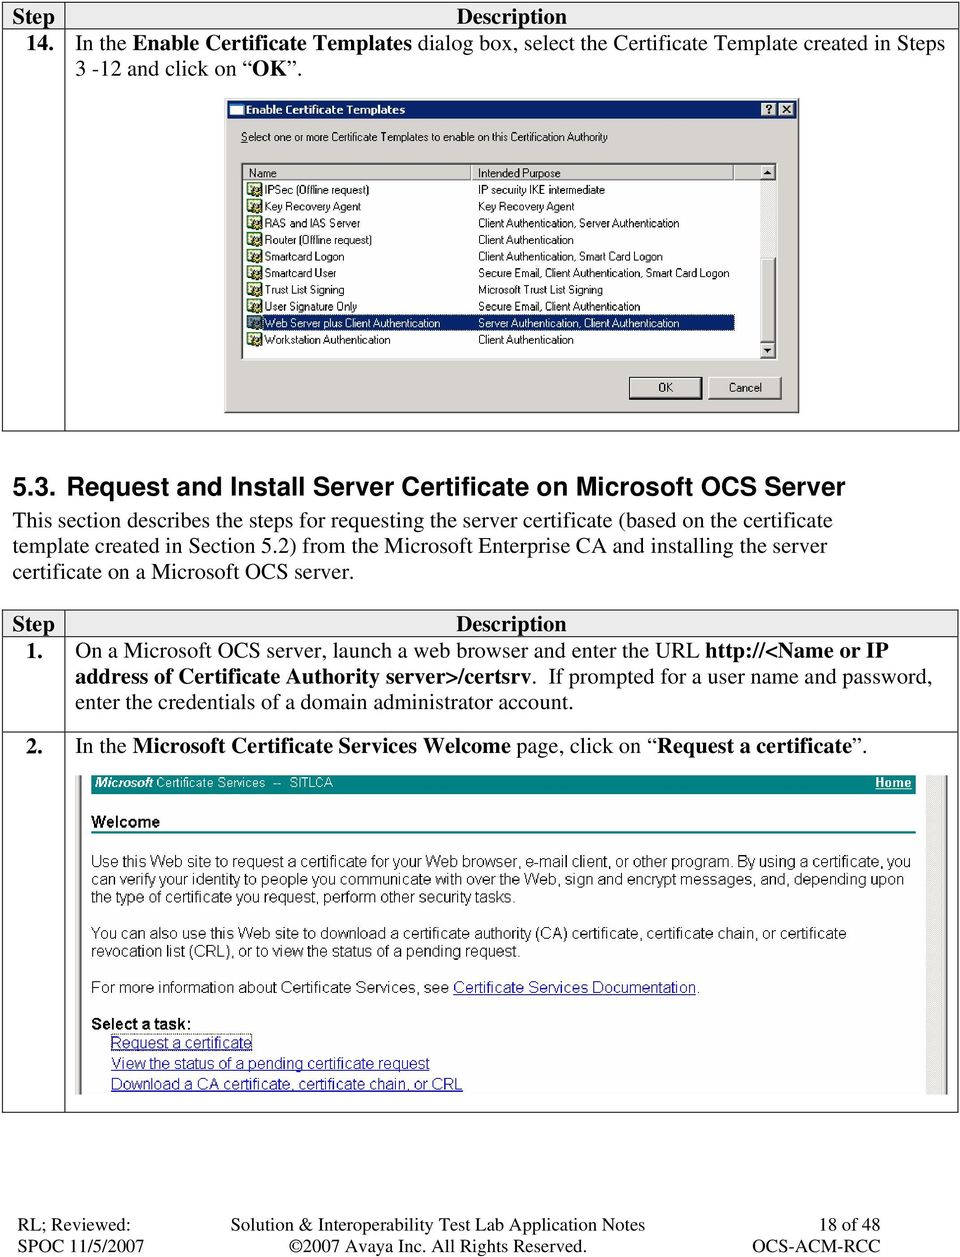 Request and Install Server Certificate on Microsoft OCS Server This section describes the steps for requesting the server certificate (based on the certificate template created in Section